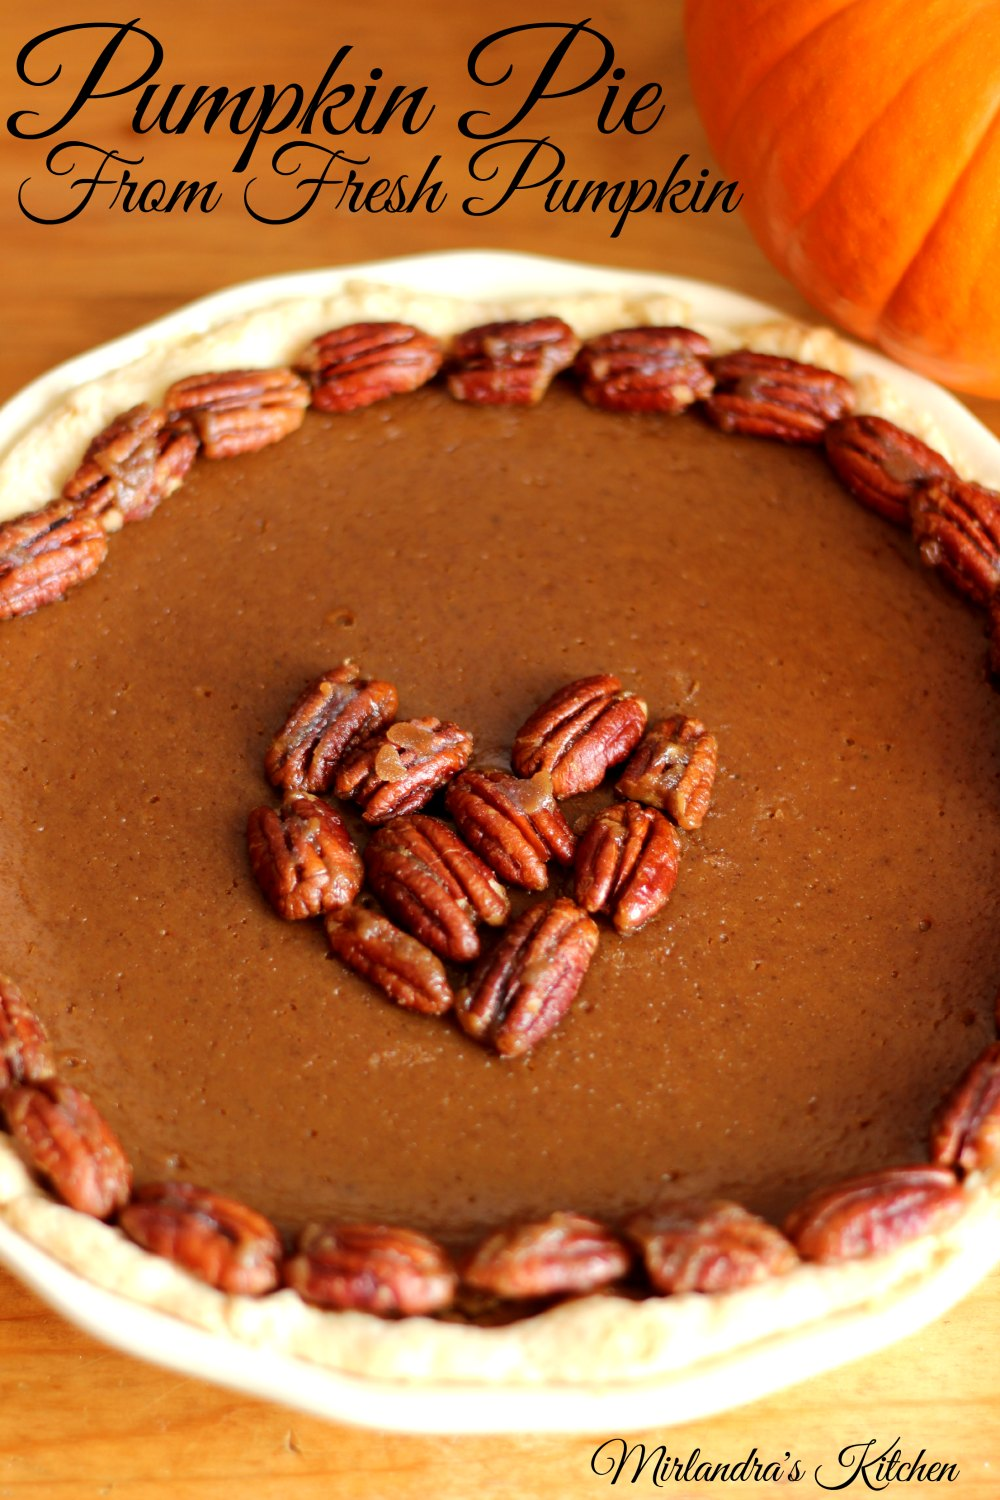 Making your own pumpkin puree is easier than it sounds and makes wonderful pies.  This spicy version full of cinnamon is perfect for Thanksgiving or dessert any time of the year.  I have also included some pie crust tips that will help you make a yummy crust without losing your mind.